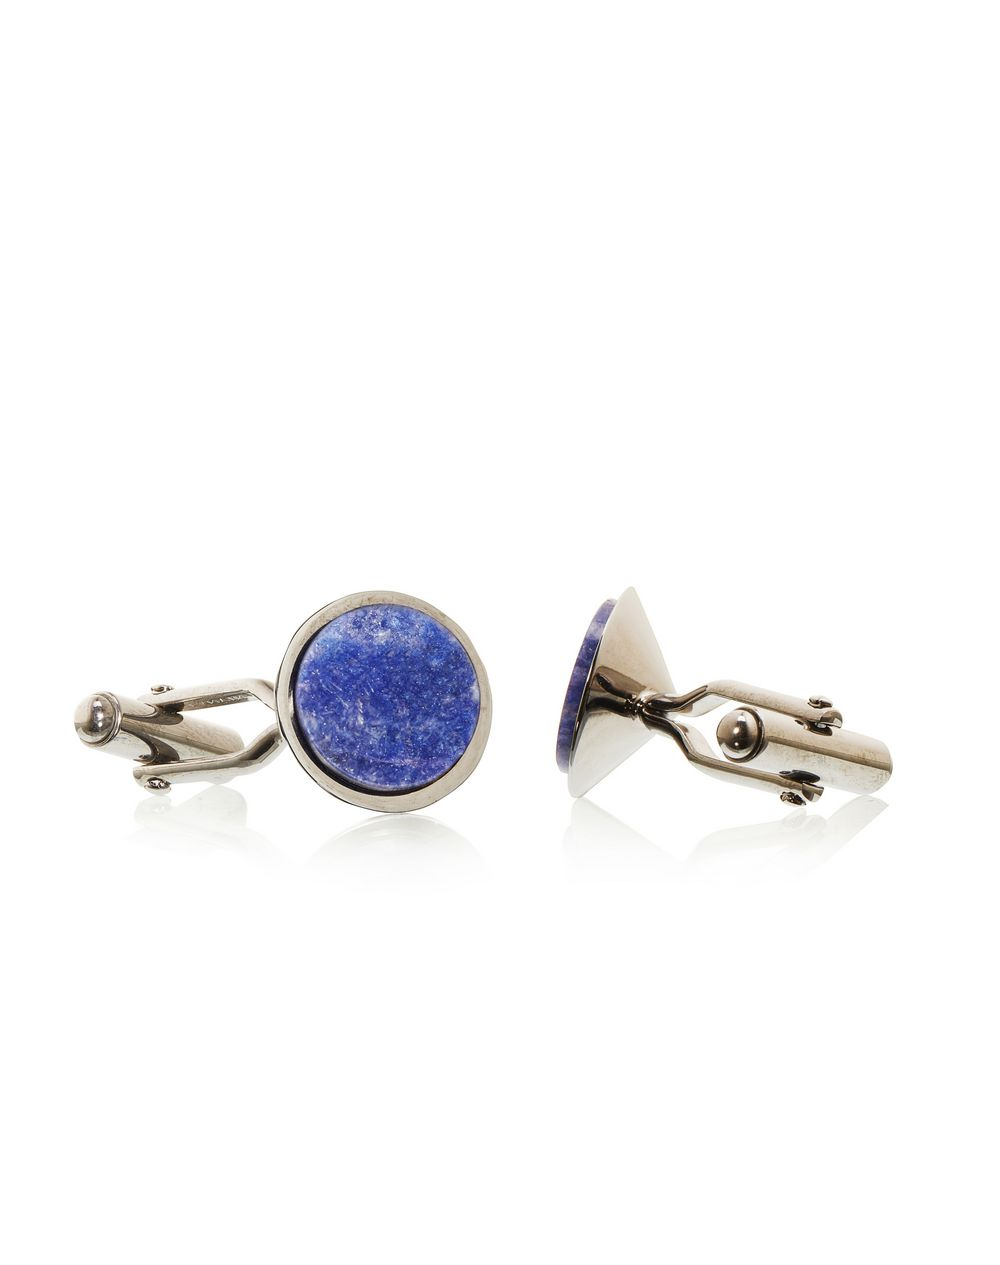 Ruthenium-plated metal cuff links - Lanvin